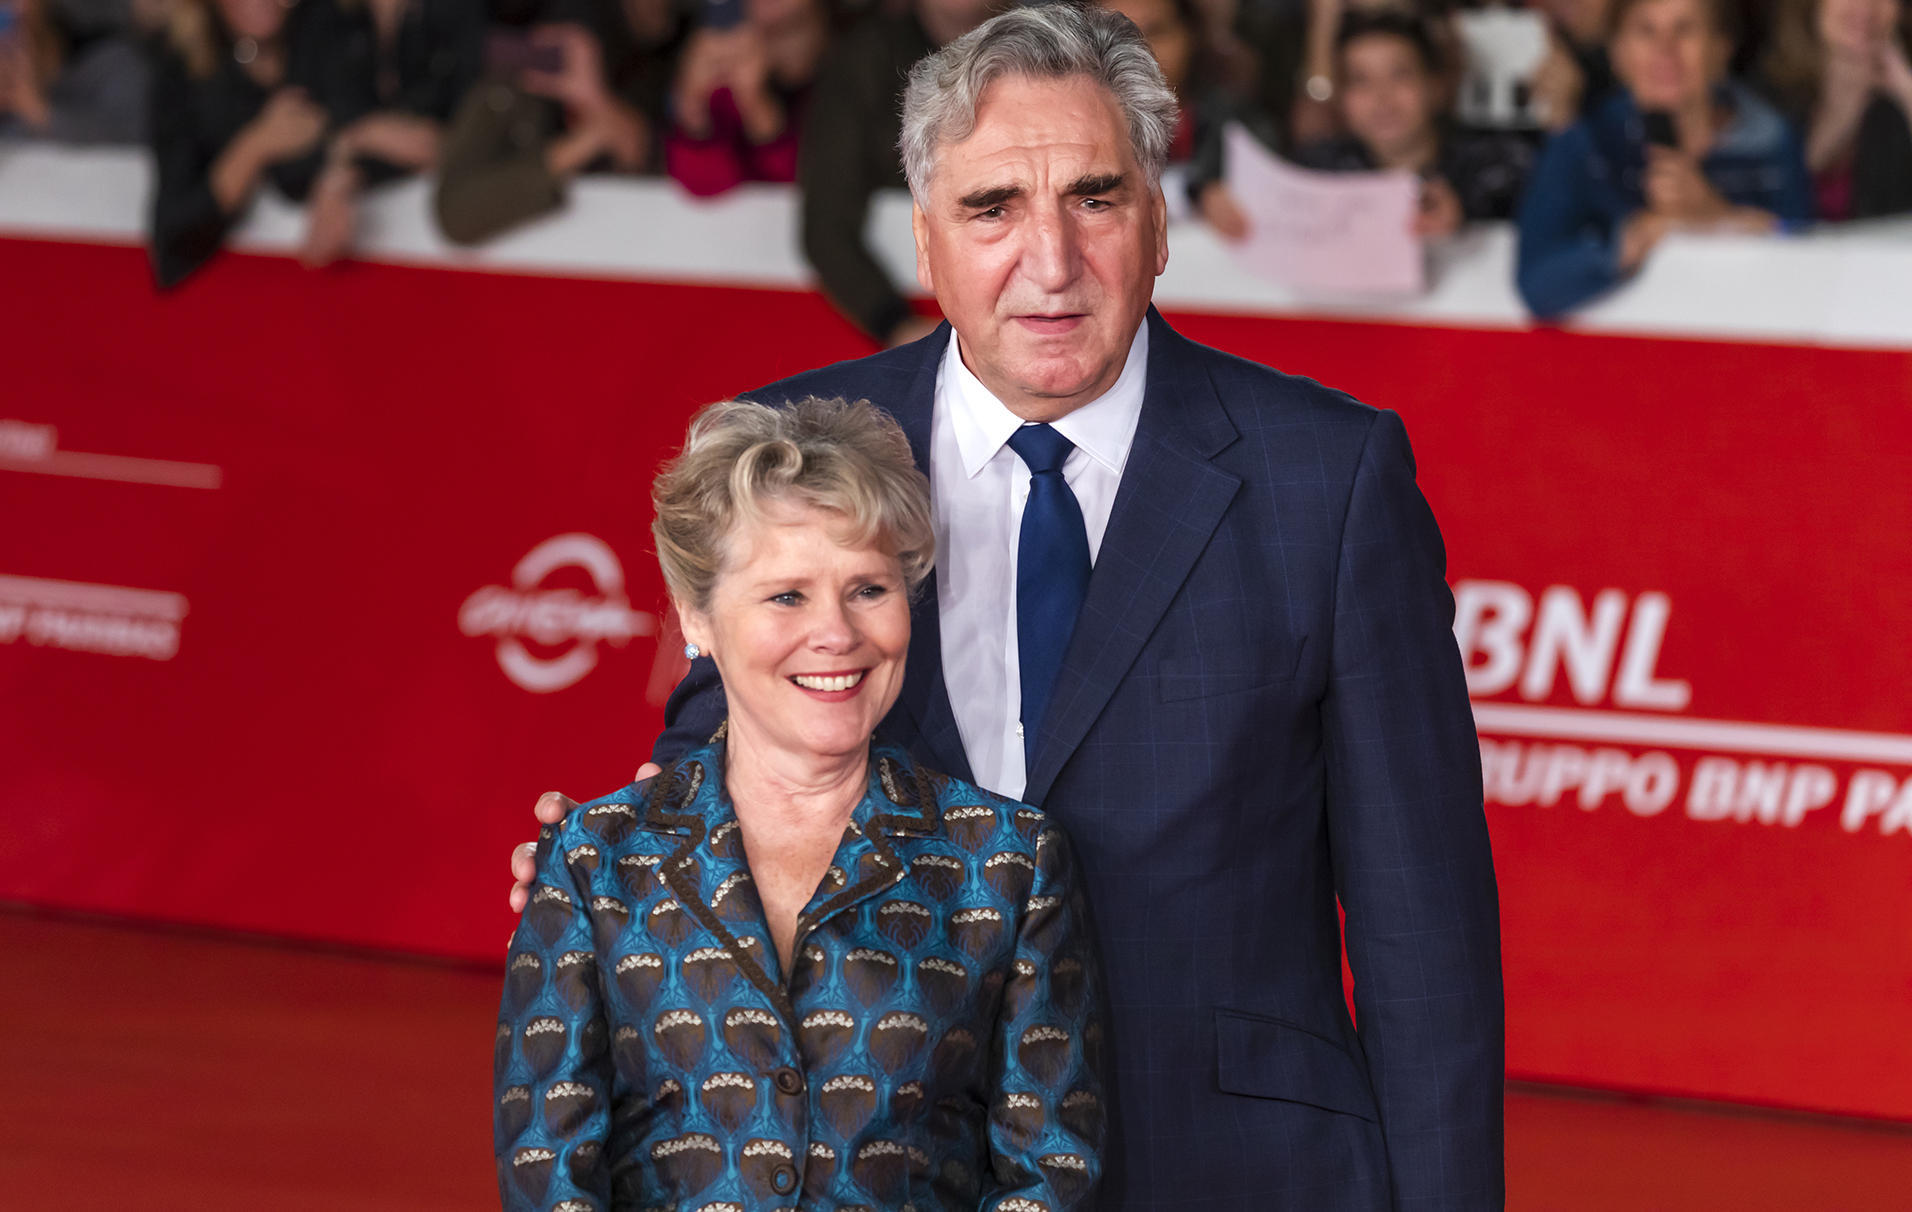 Downtown Abbey stars Imelda Staunton and Jim Carter